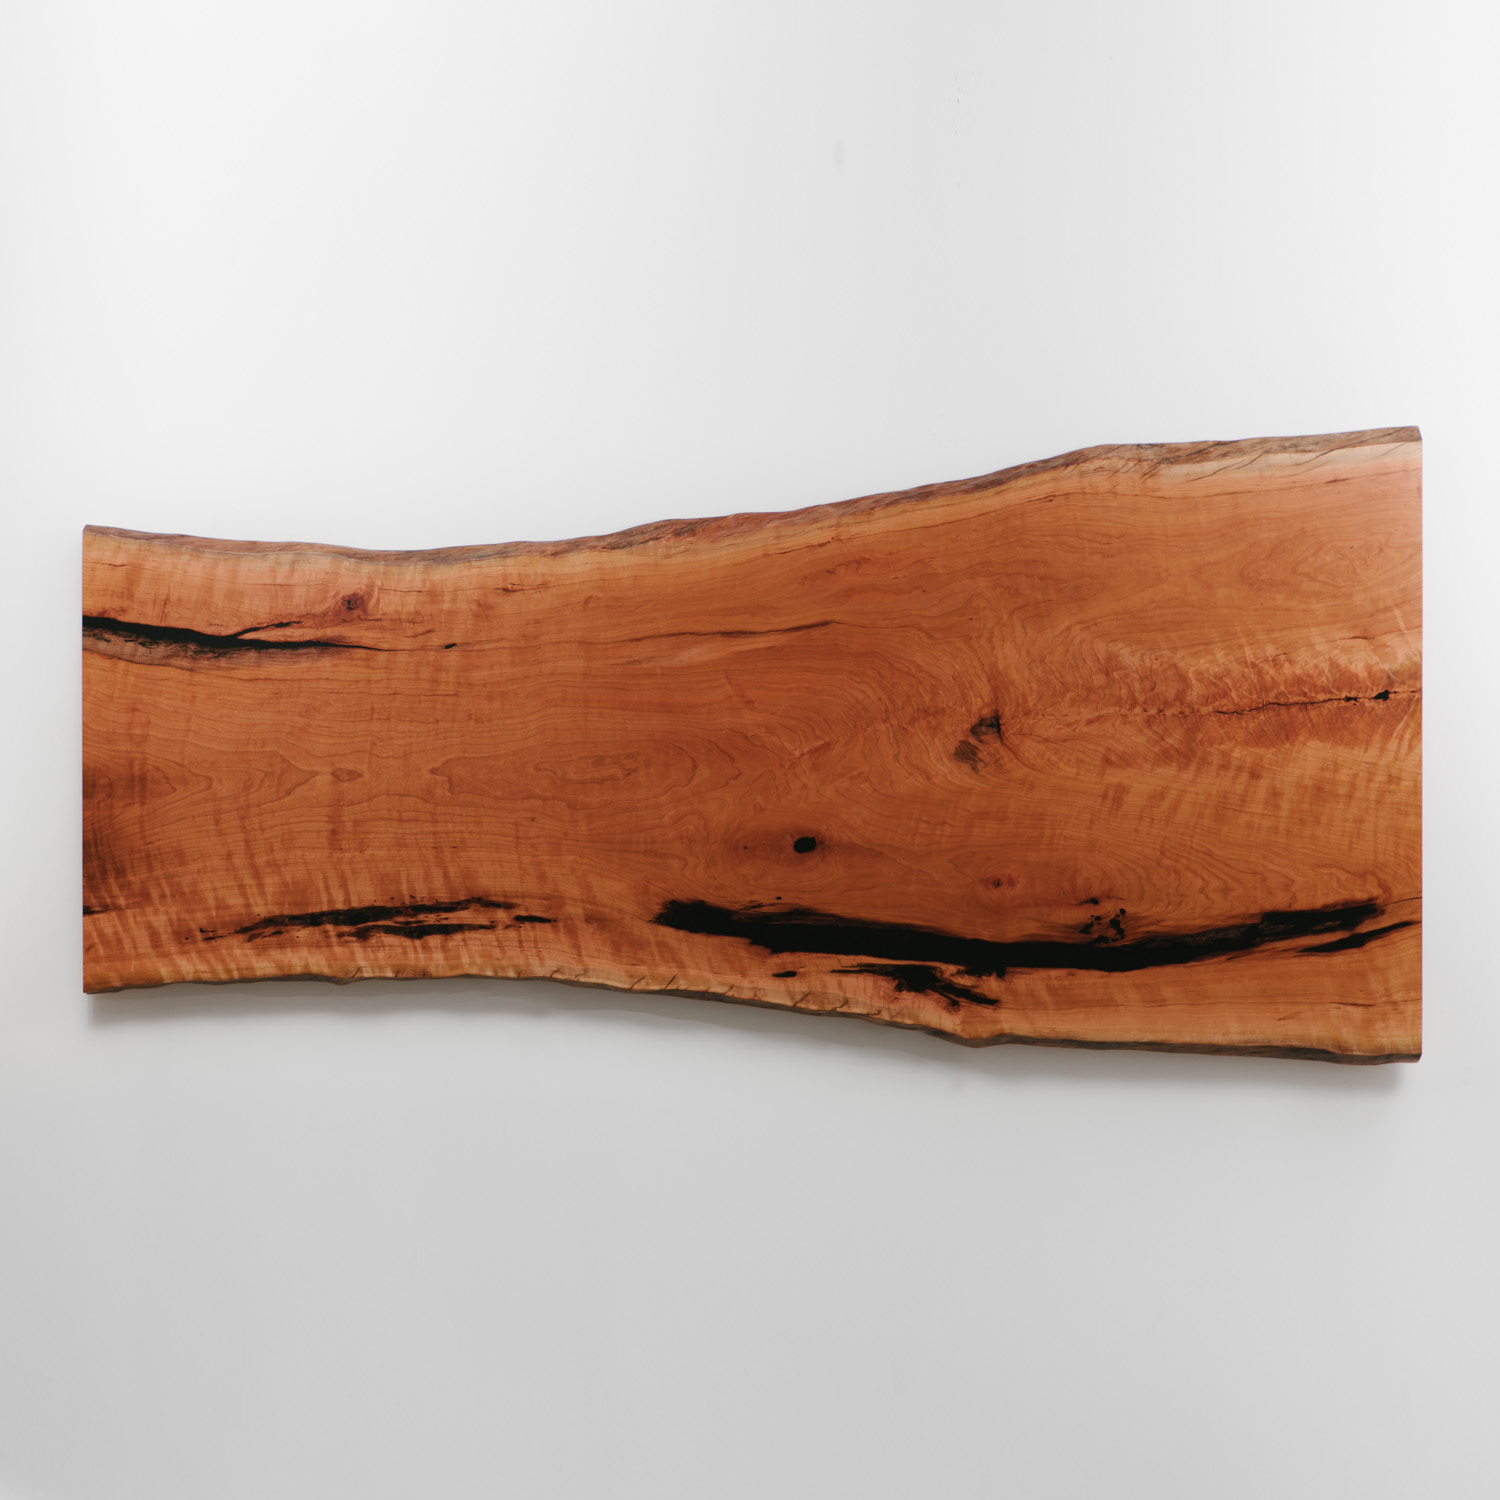 Single slab live edge cherry with natural tree character